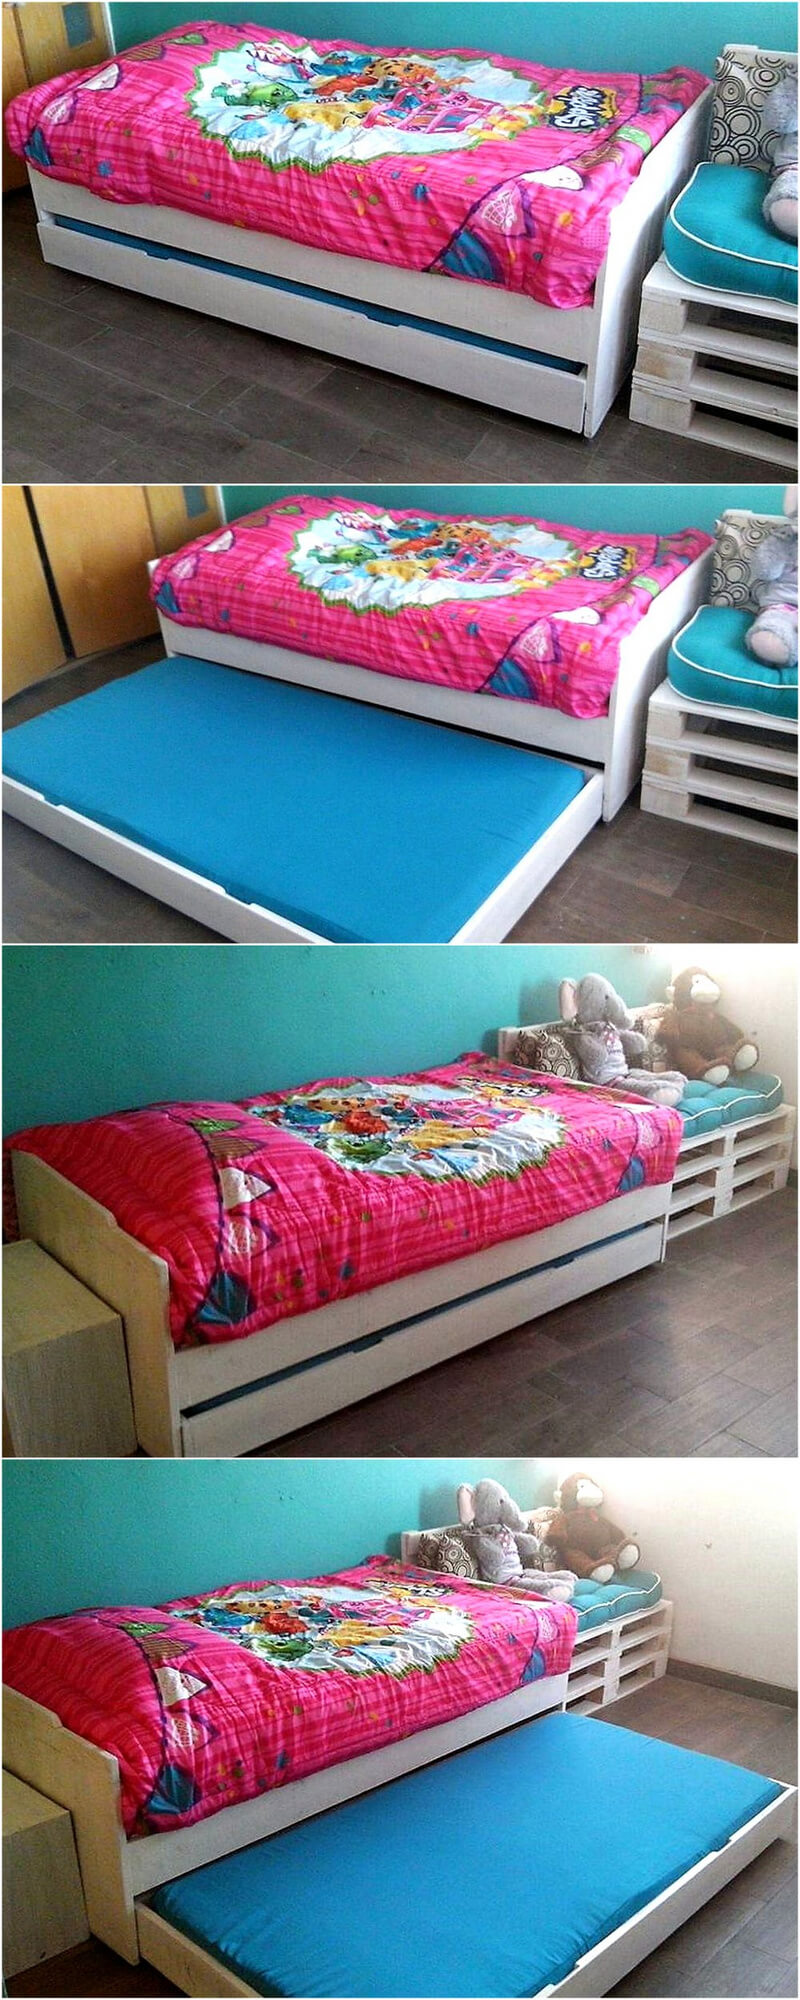 Amazing Uses For Old Used Wooden Pallets | Wood Pallet ...